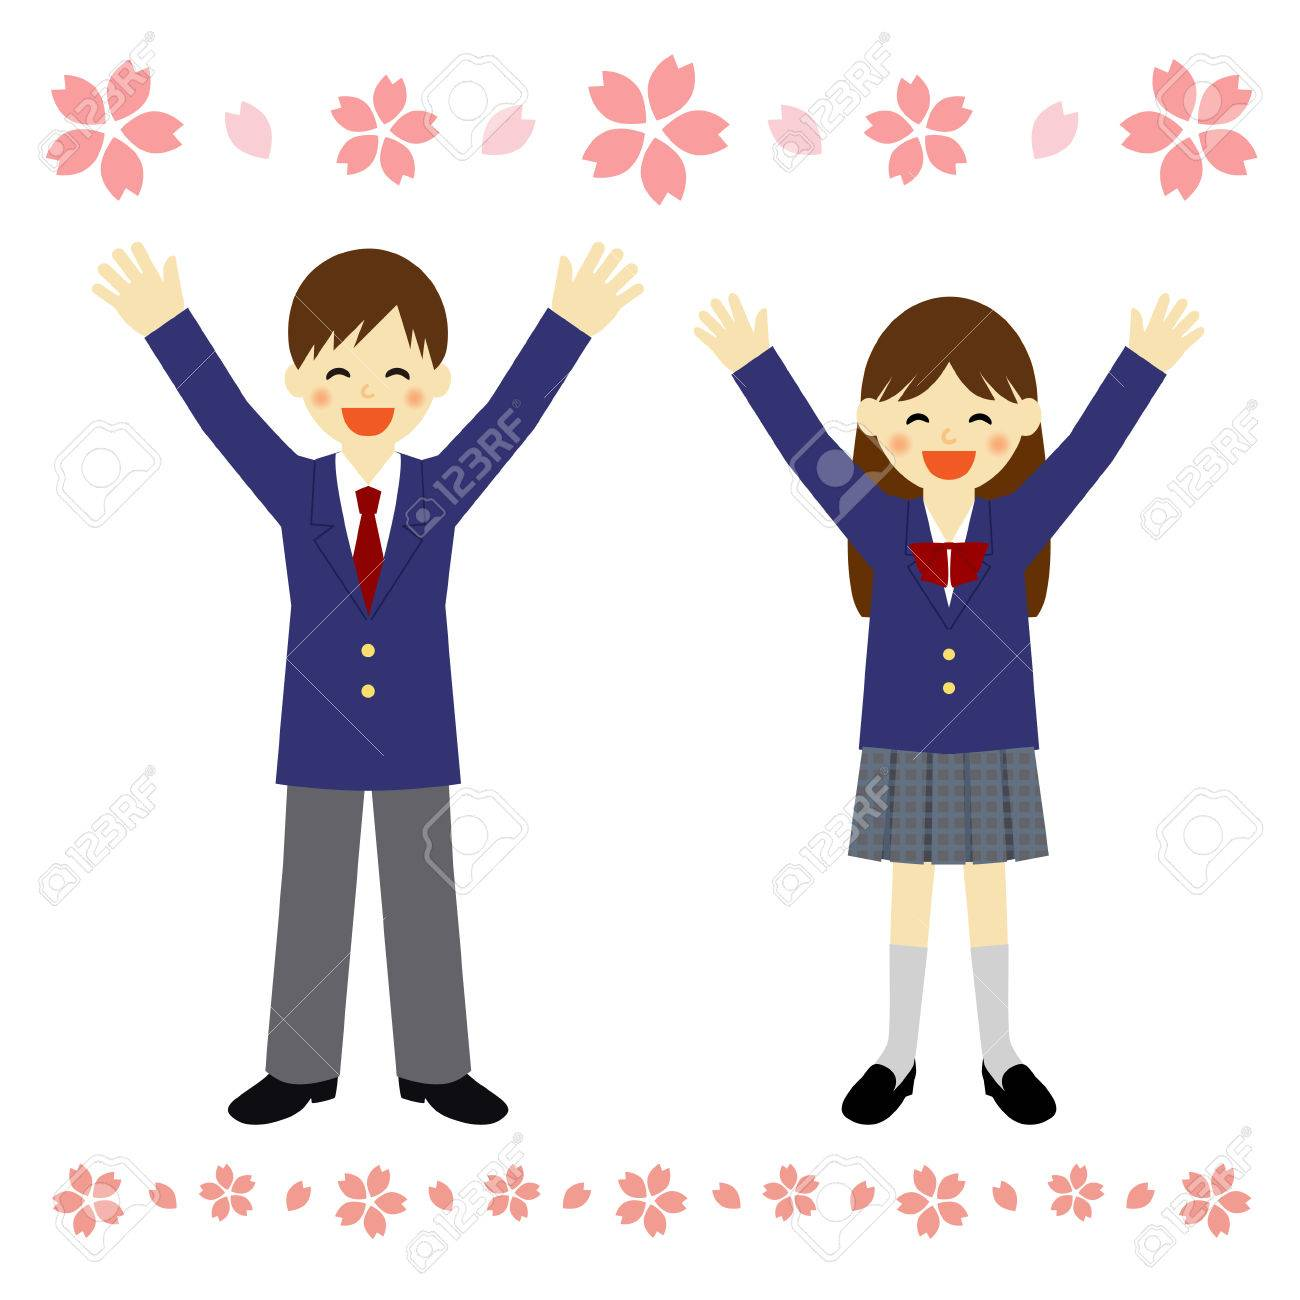 happy student royalty free cliparts vectors and stock illustration rh 123rf com